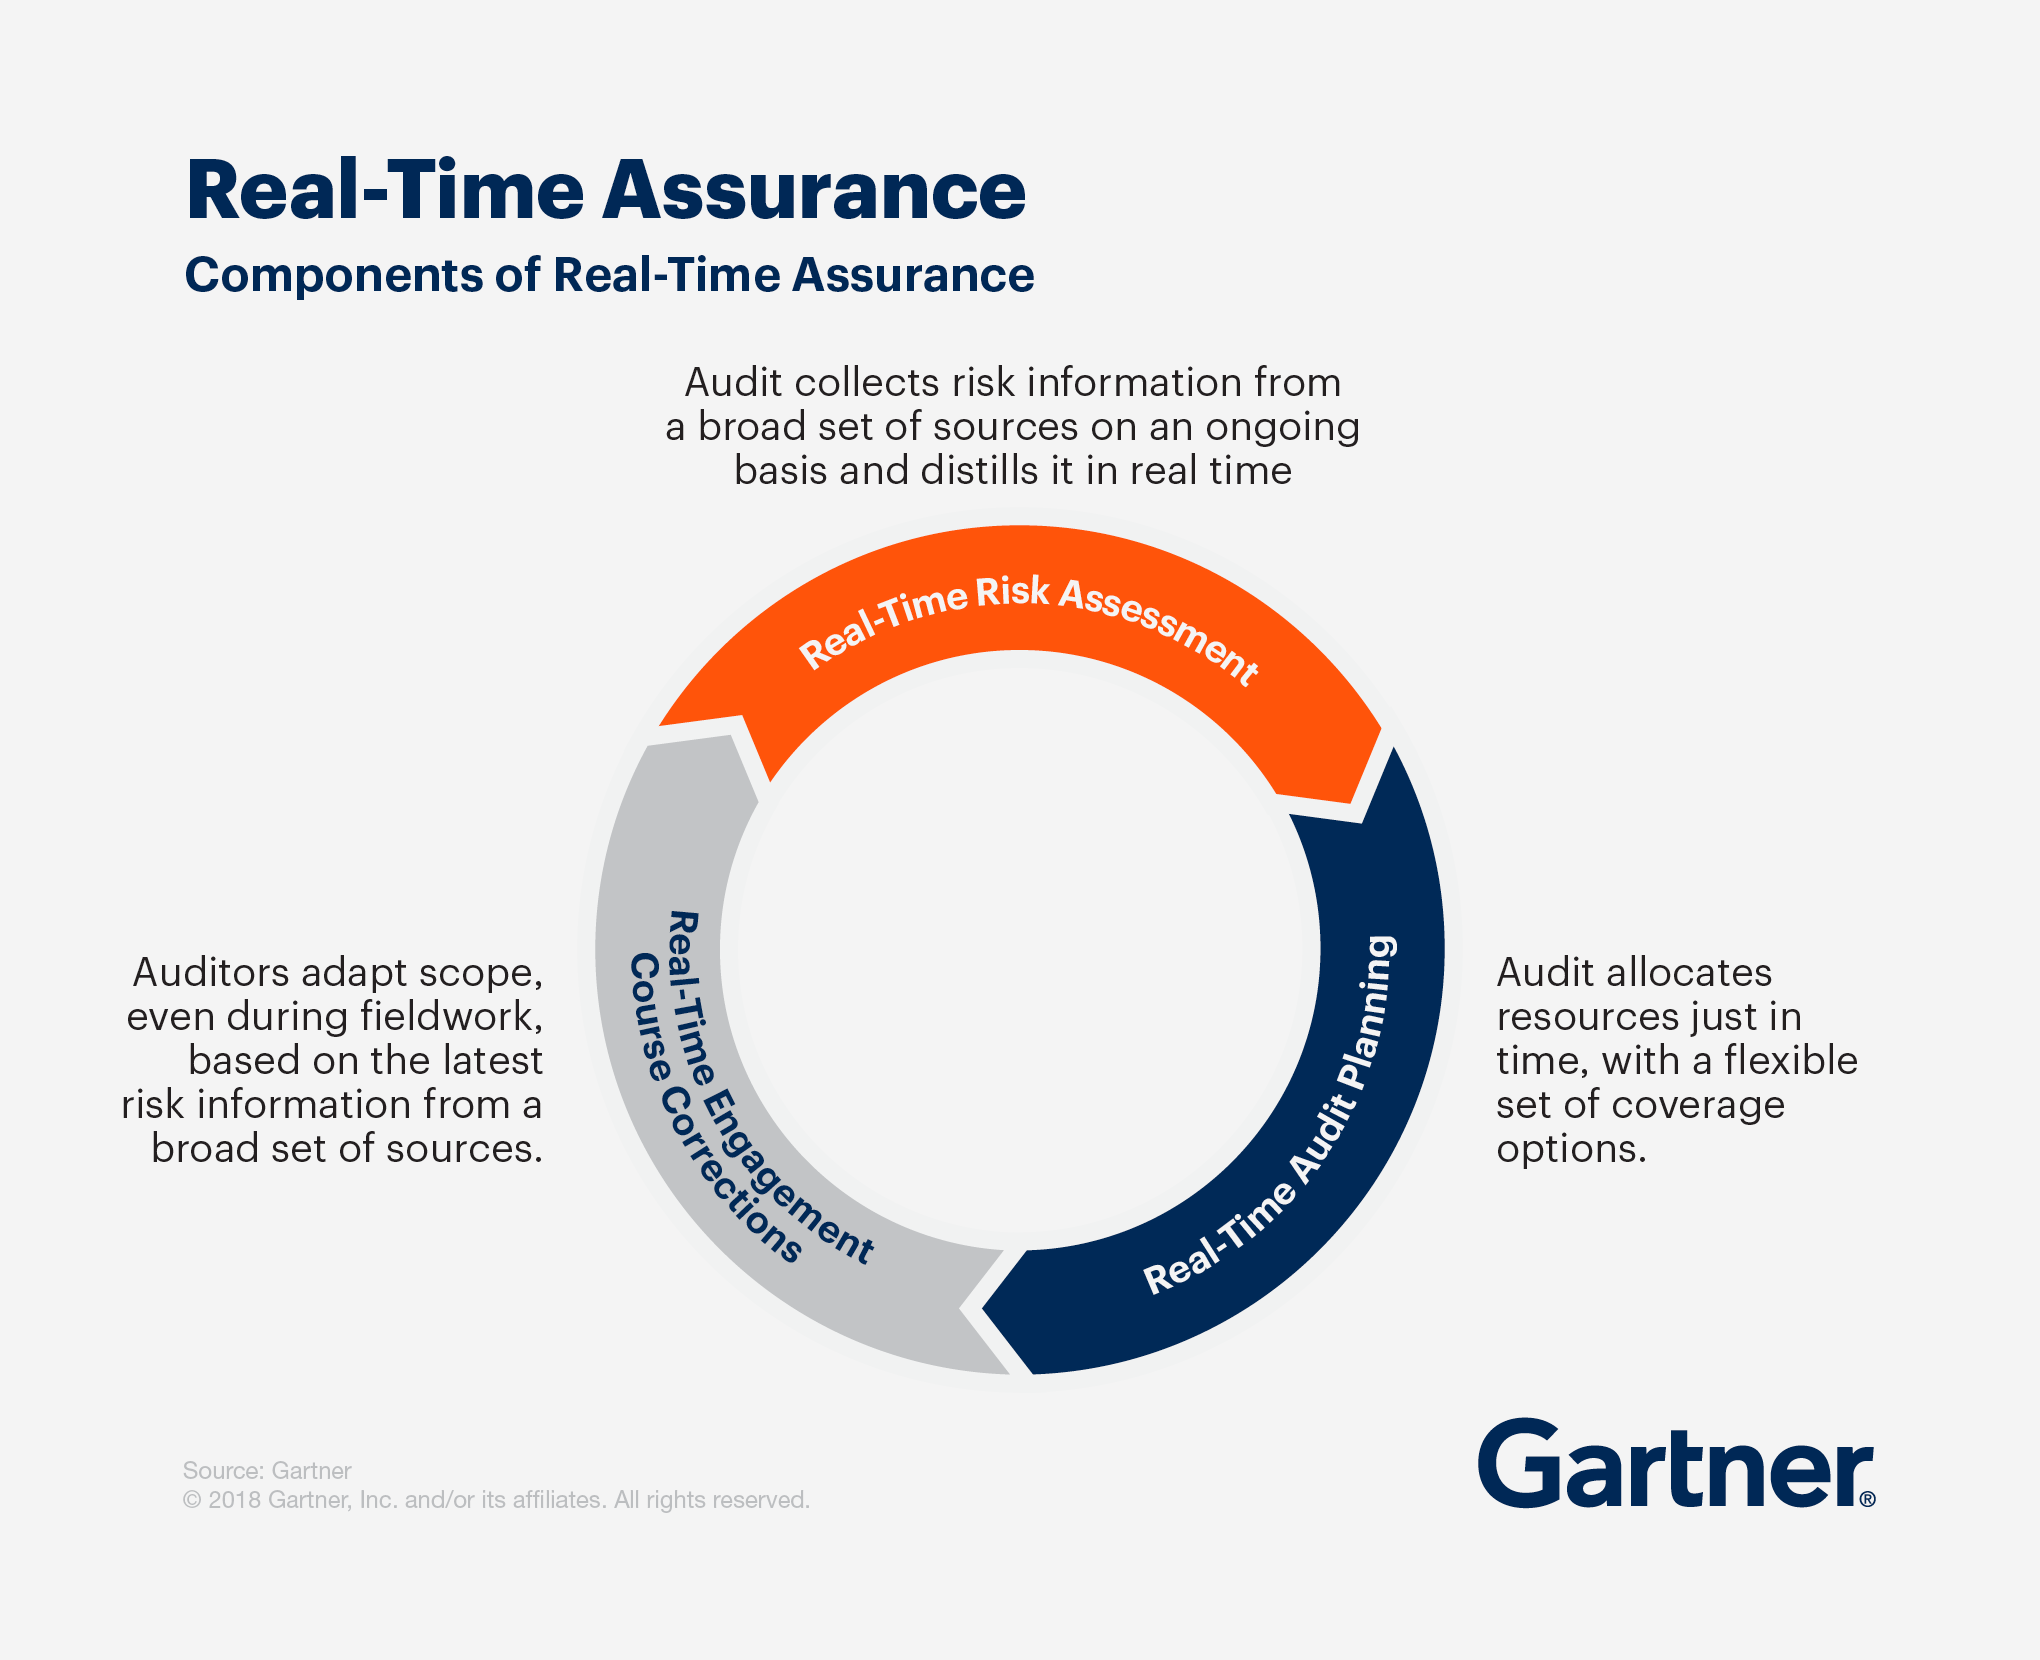 Components of Real-Time Assurance include real-time risk assessment, real-time audit planning and real-time engagement course corrections